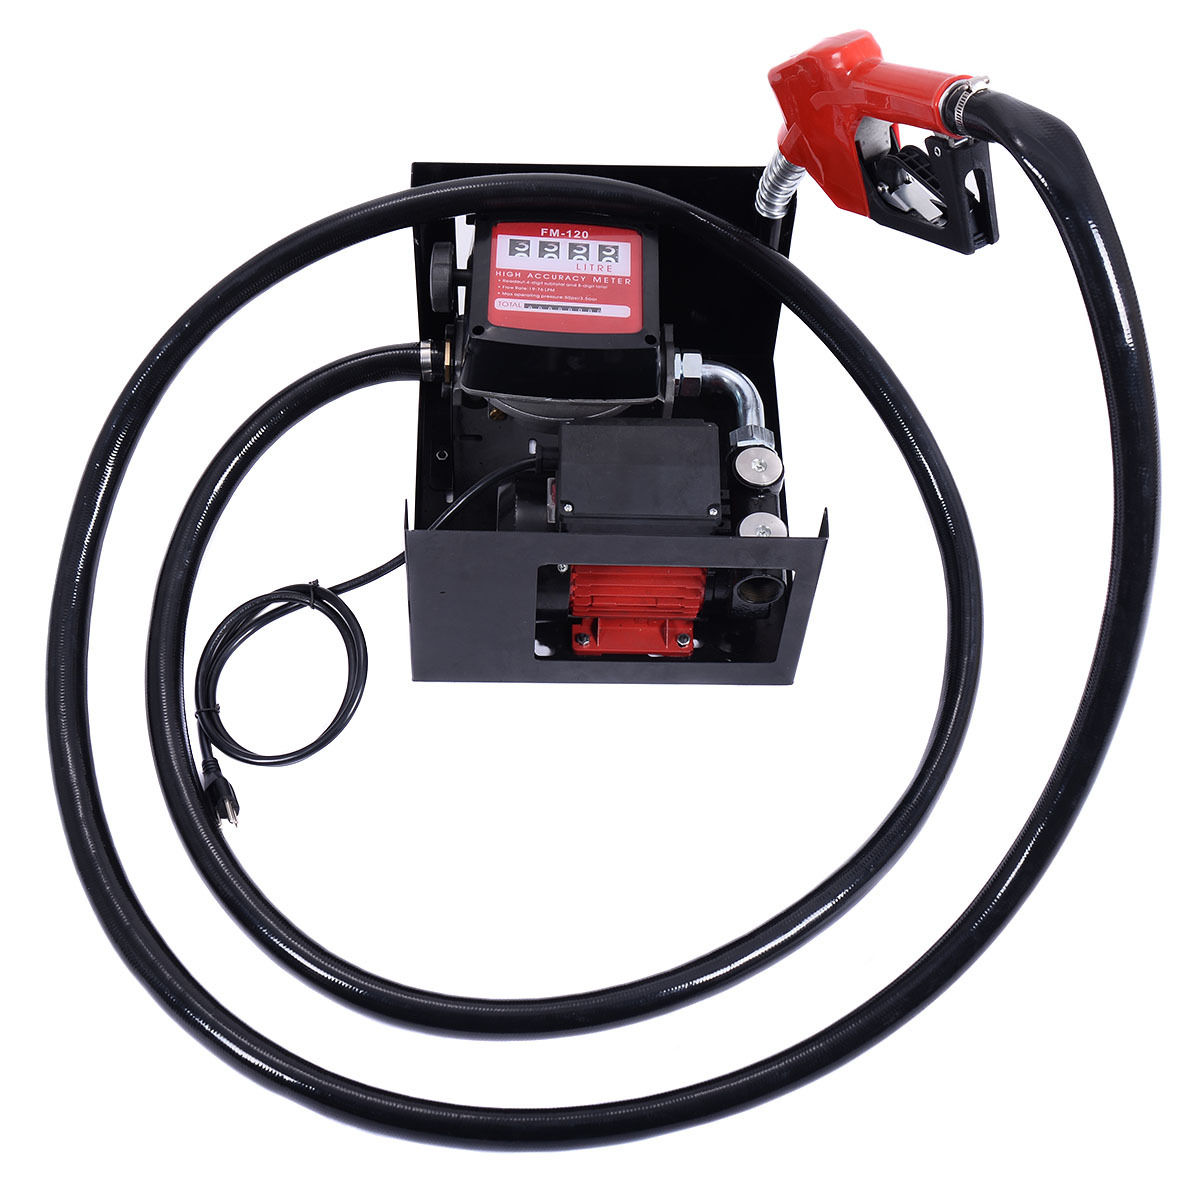 Electric Diesel Oil Transfer Pump 110V Fuel Manual Nozzle Hose w/ Meter